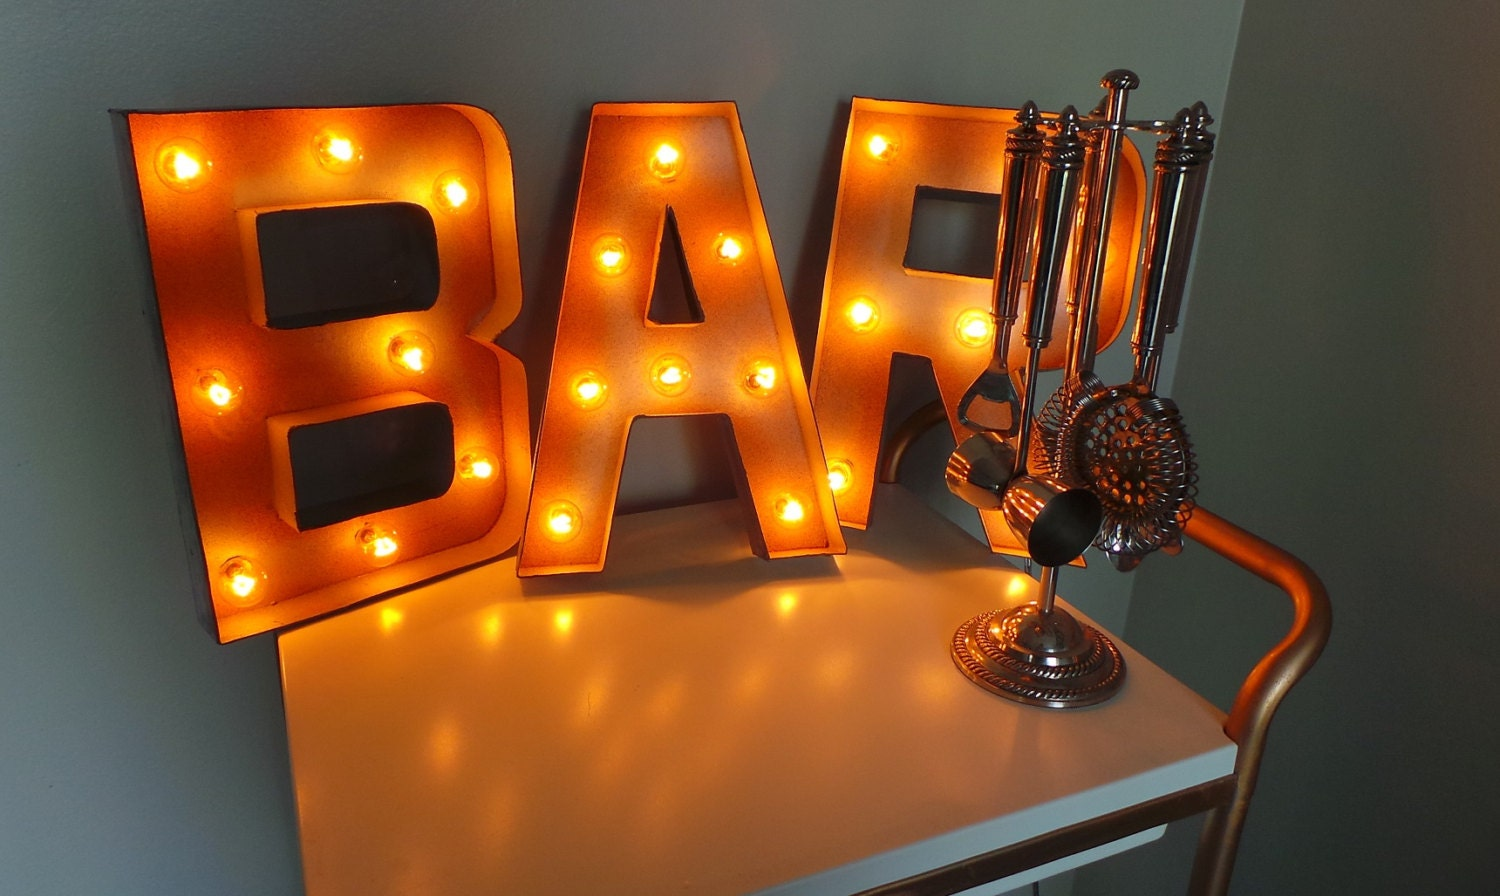 bar light sign 9824 12 plug in bar light up marquee sign mozeypictures Choice Image